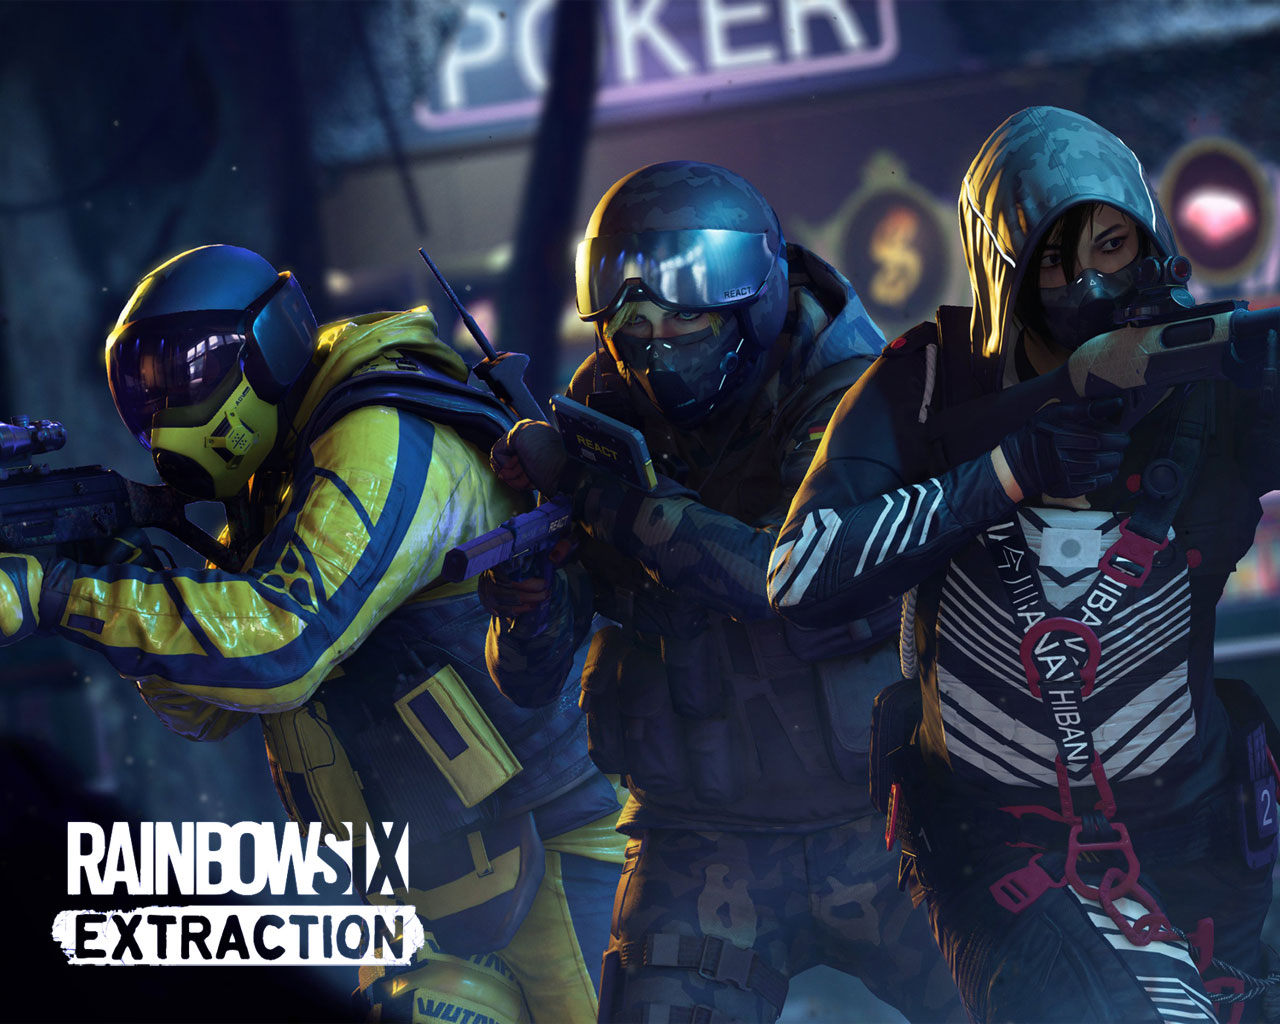 Free Rainbow Six Extraction Wallpaper in 1280x1024